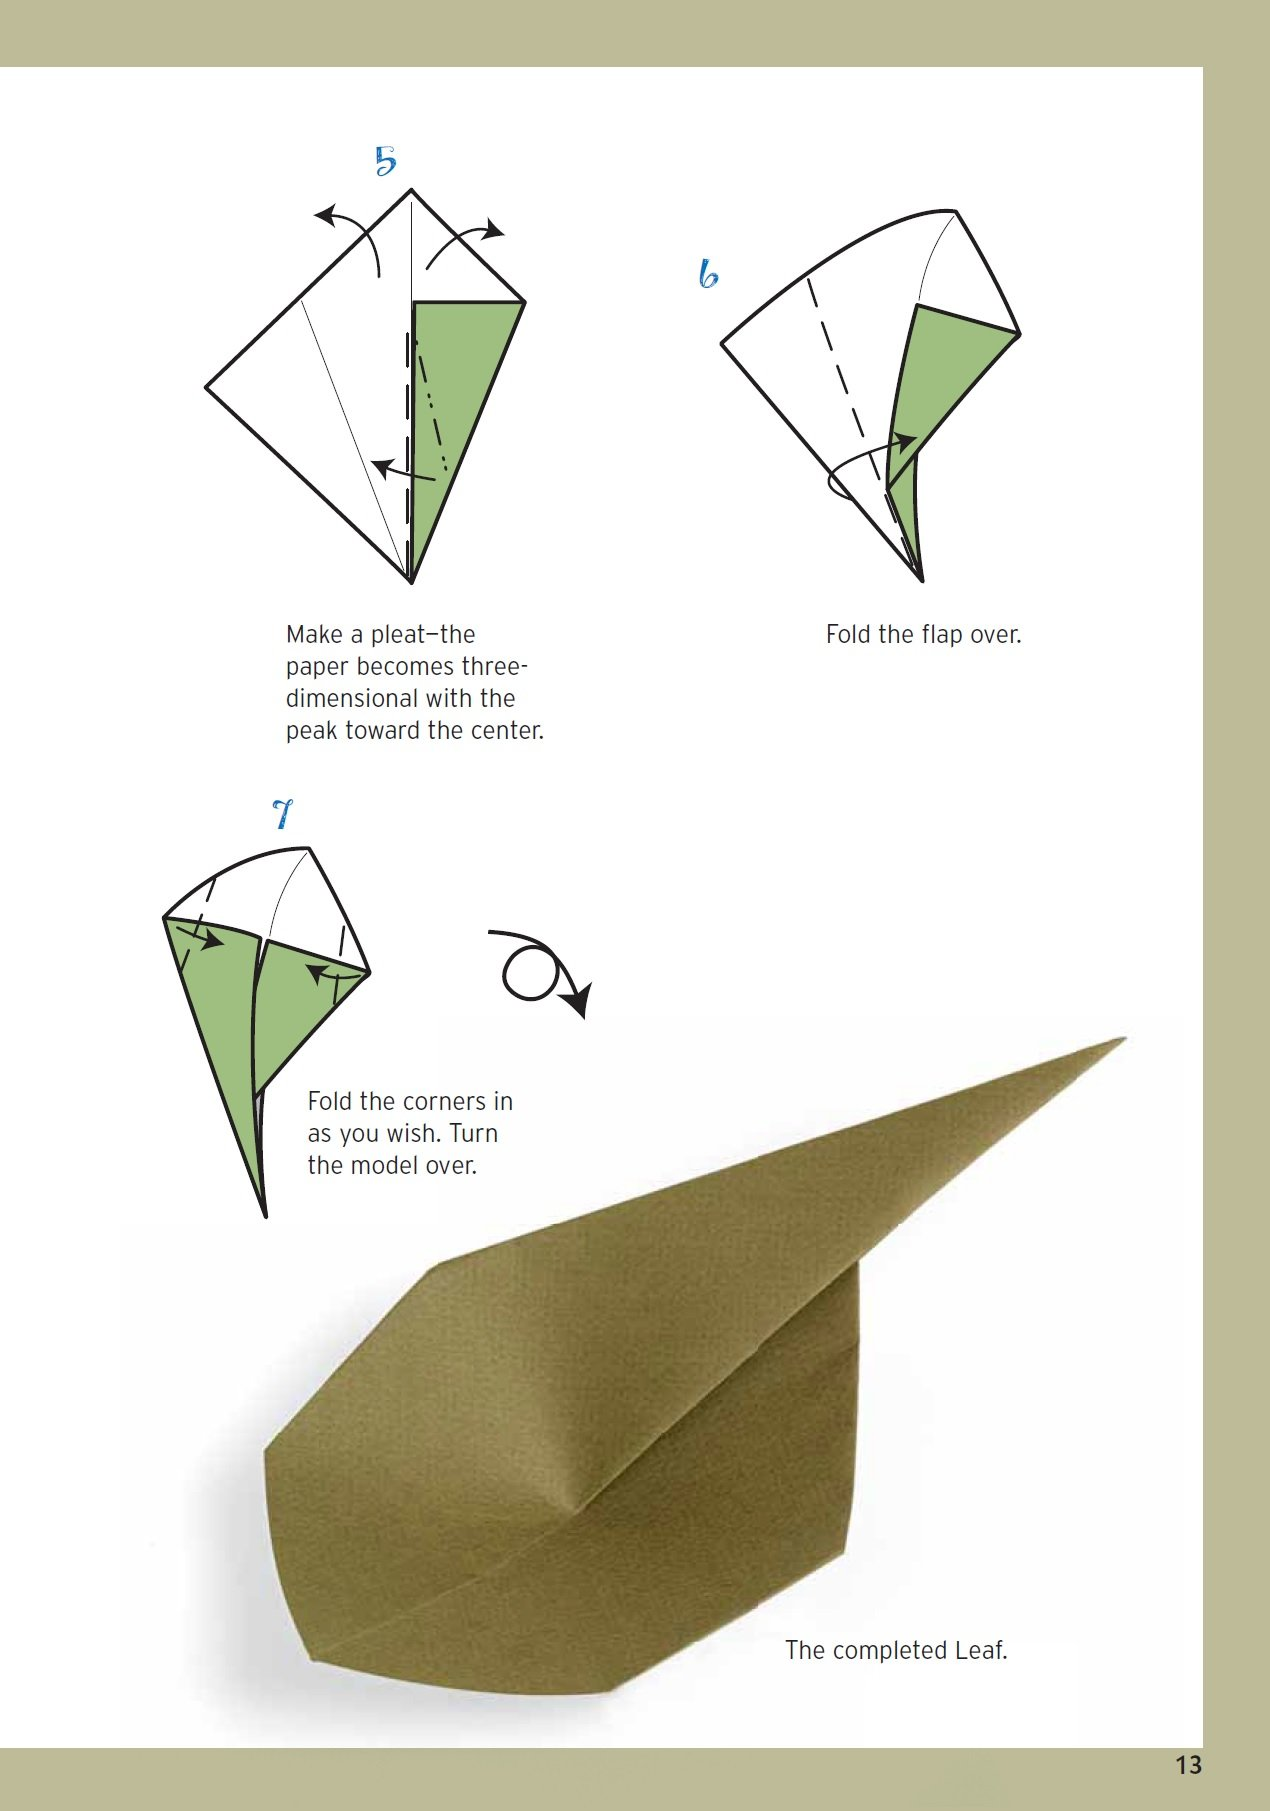 Amazon nick robinsons beginning origami kit an origami amazon nick robinsons beginning origami kit an origami master shows you how to fold 20 captivating models kit with origami book 72 high quality jeuxipadfo Choice Image